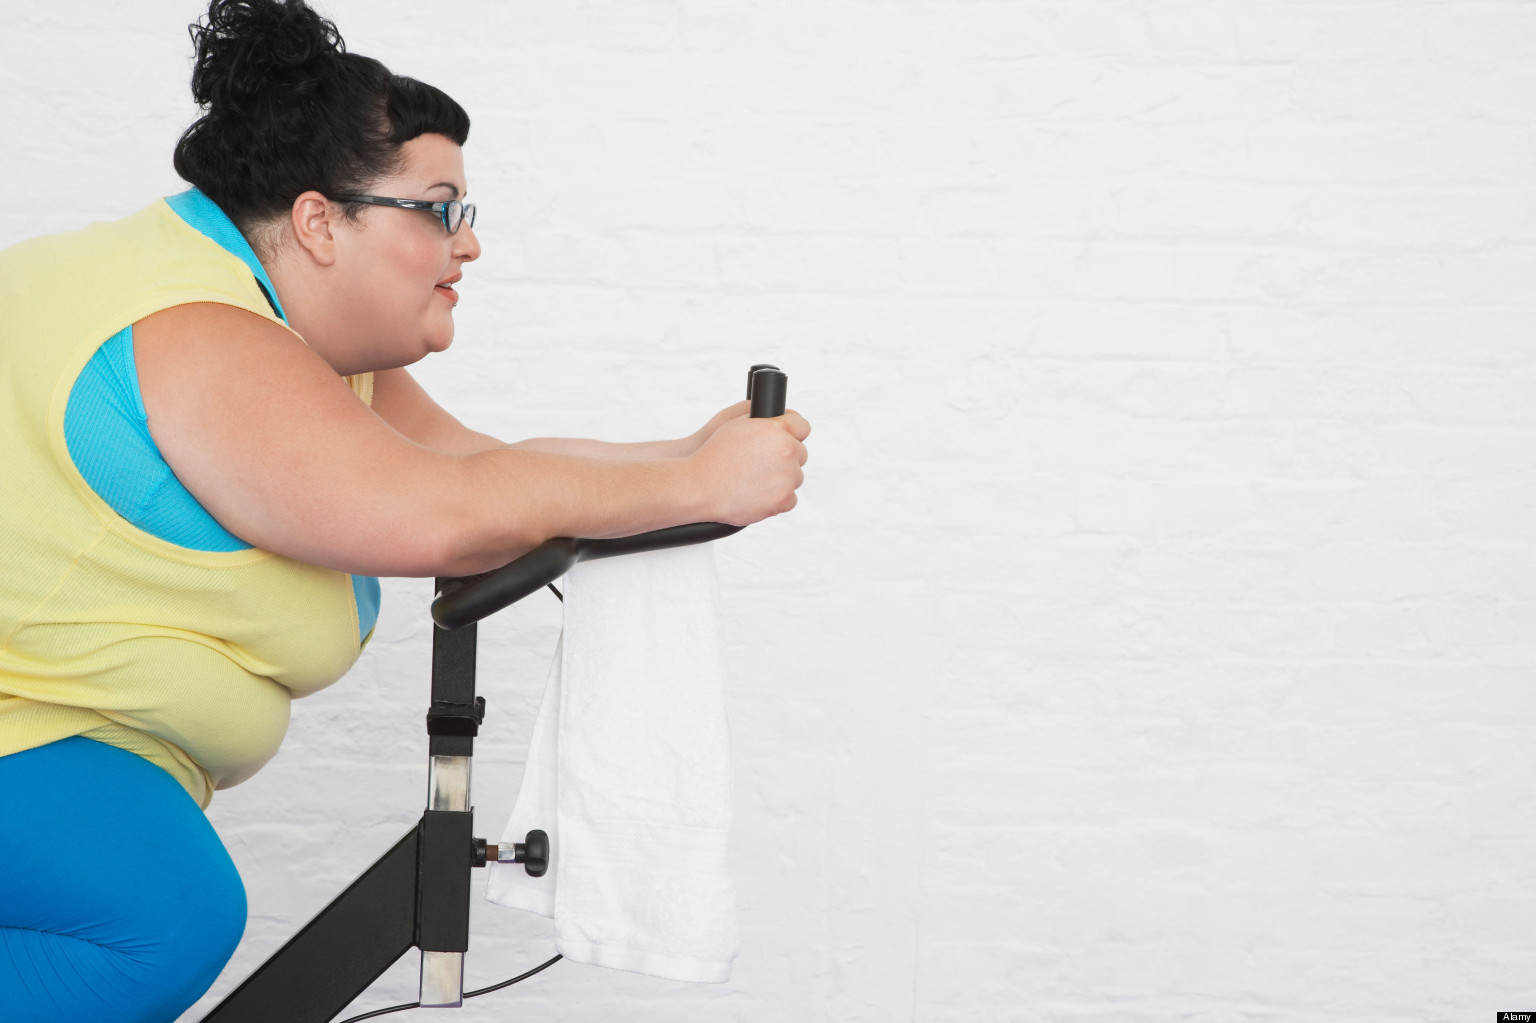 Women Over 40: Four New Ways to Approach Weight Loss ...